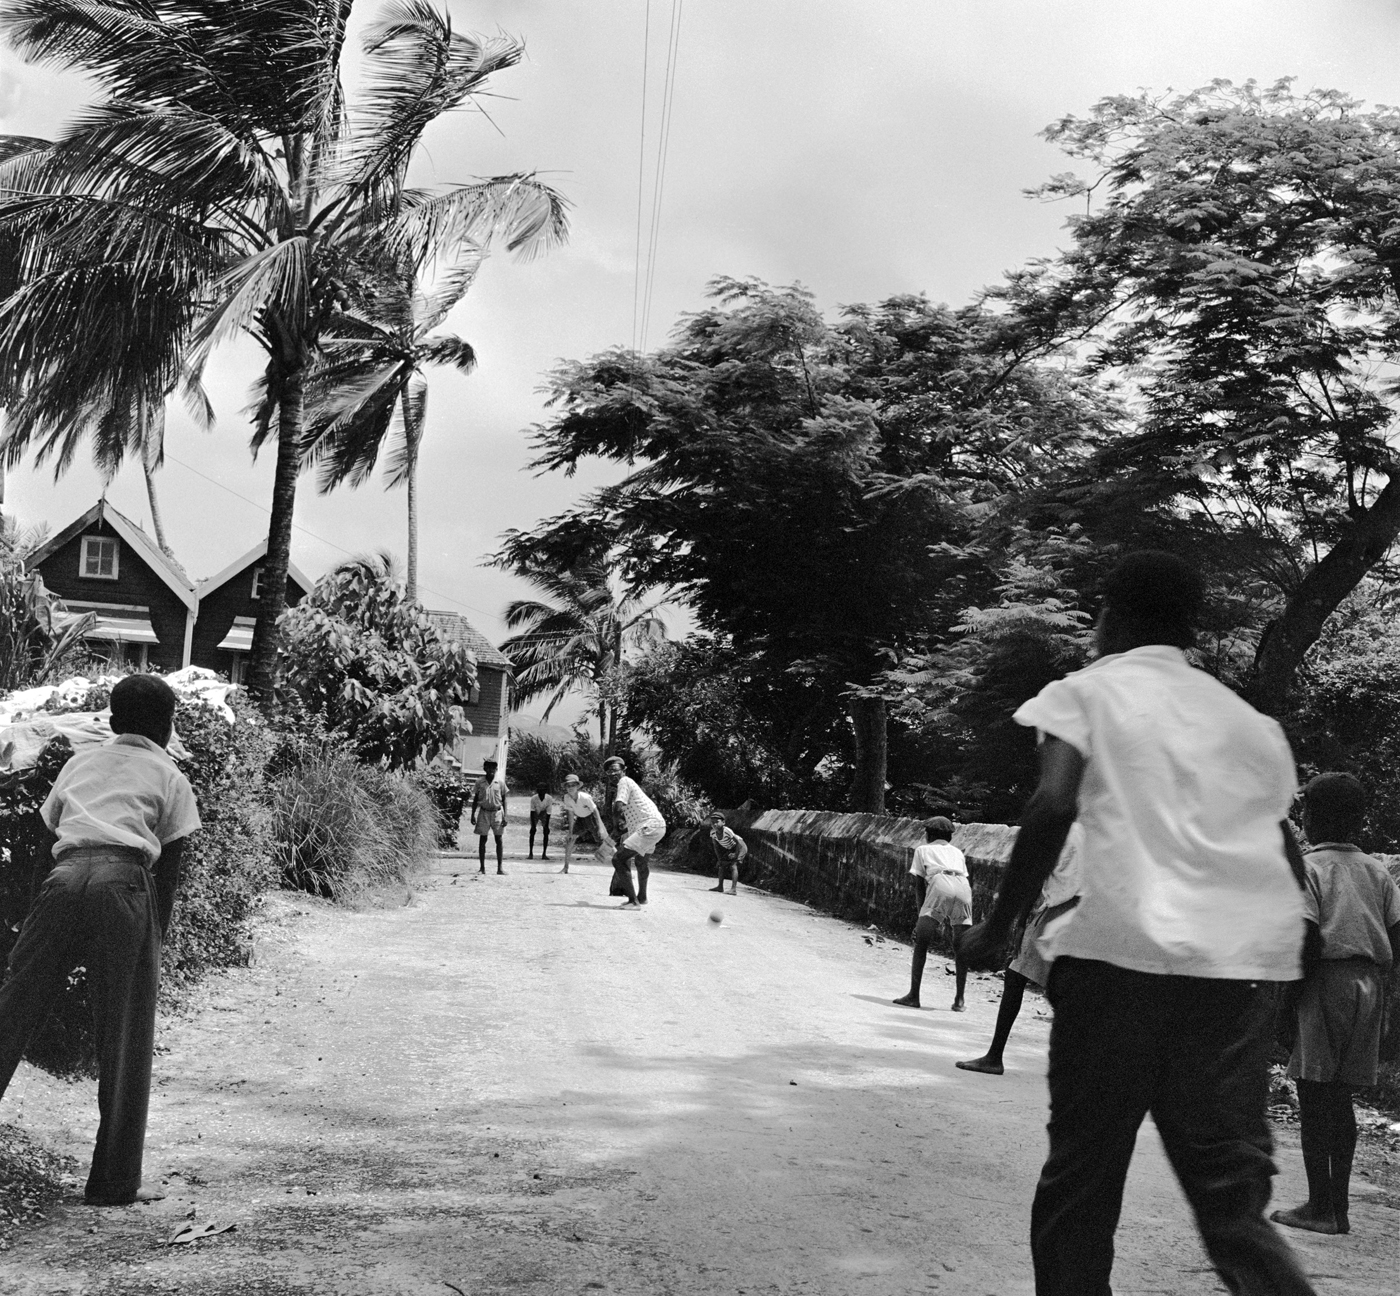 Children play cricket in a street in Port-of-Spain